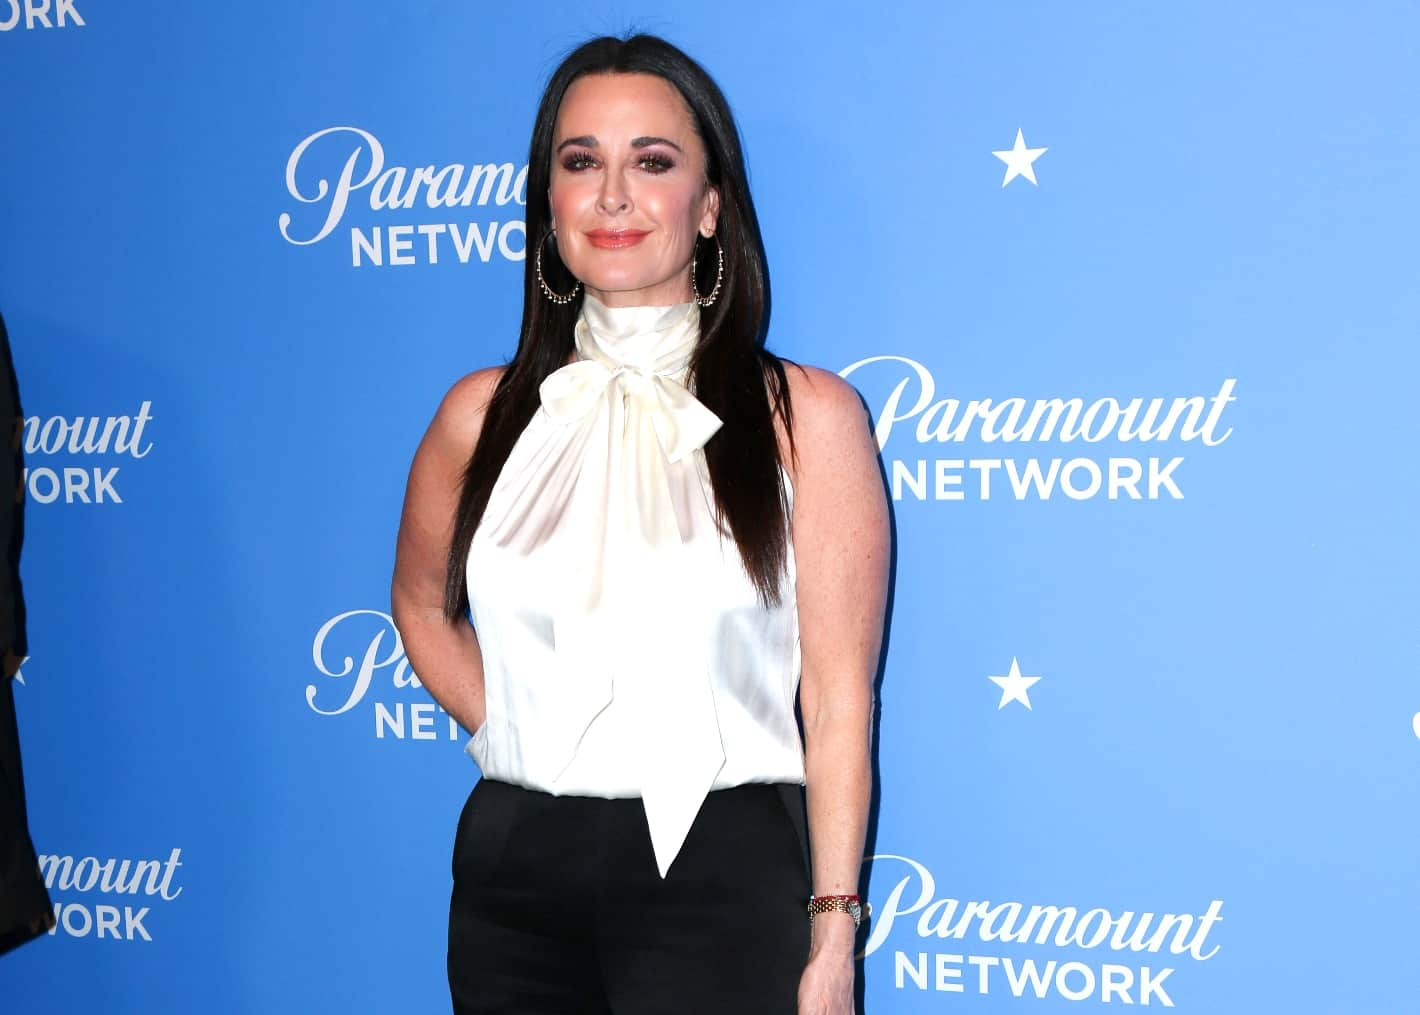 Kyle Richards' Show American Woman Cancelled